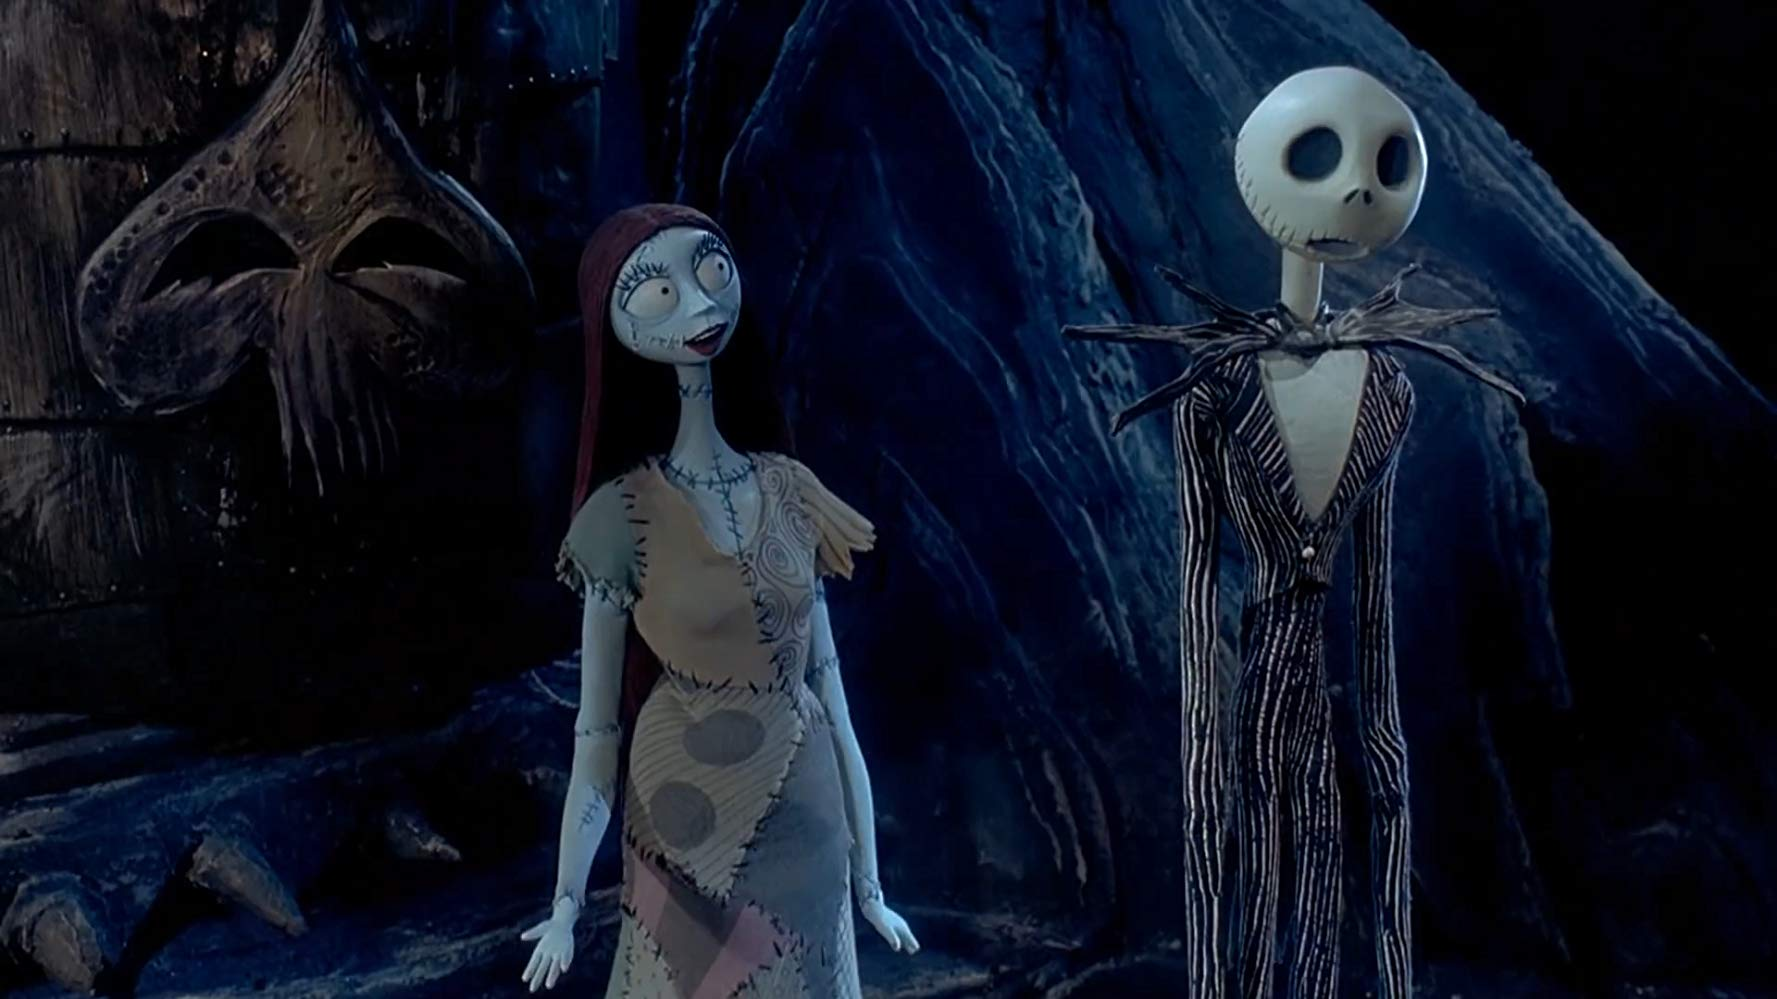 Jack Skellington (voiced by Chris Sarandon) and Sally (voiced by Catherine O'Hara) in The Nightmare Before Christmas (1993)